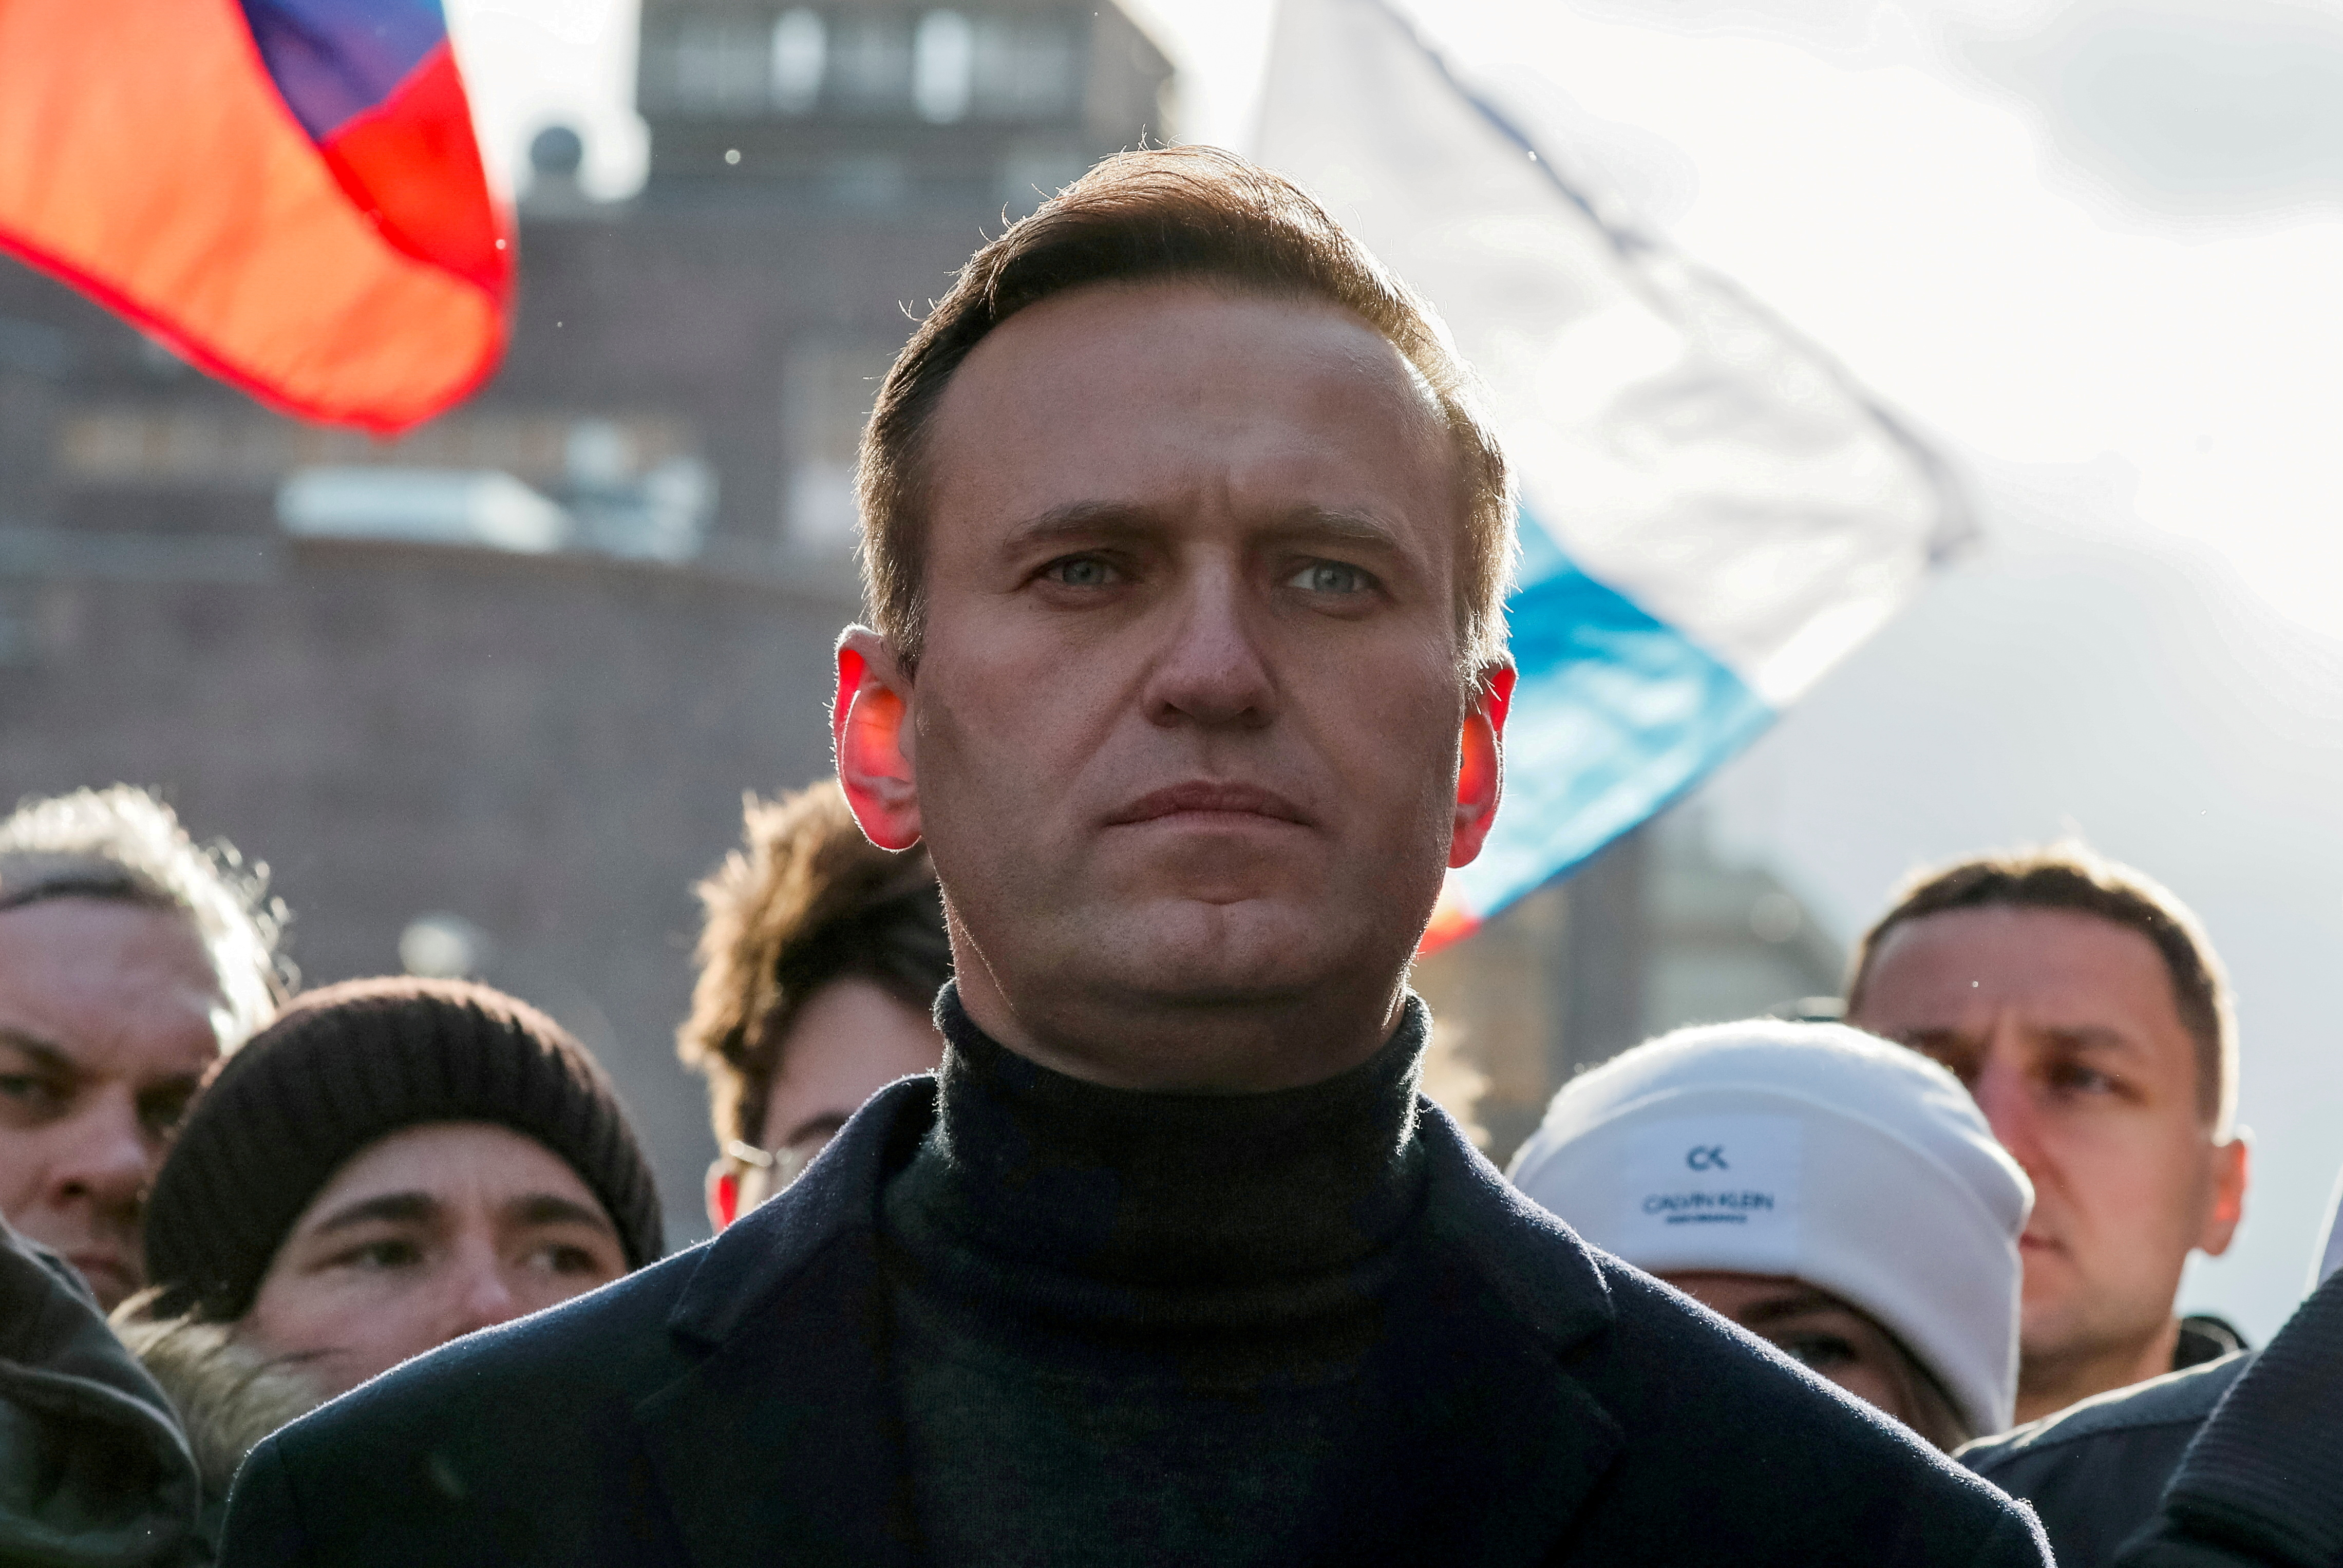 Russian opposition politician Alexei Navalny takes part in a rally to mark the 5th anniversary of opposition politician Boris Nemtsov's murder and to protest against proposed amendments to the country's constitution, in Moscow, Russia February 29, 2020. REUTERS/Shamil Zhumatov